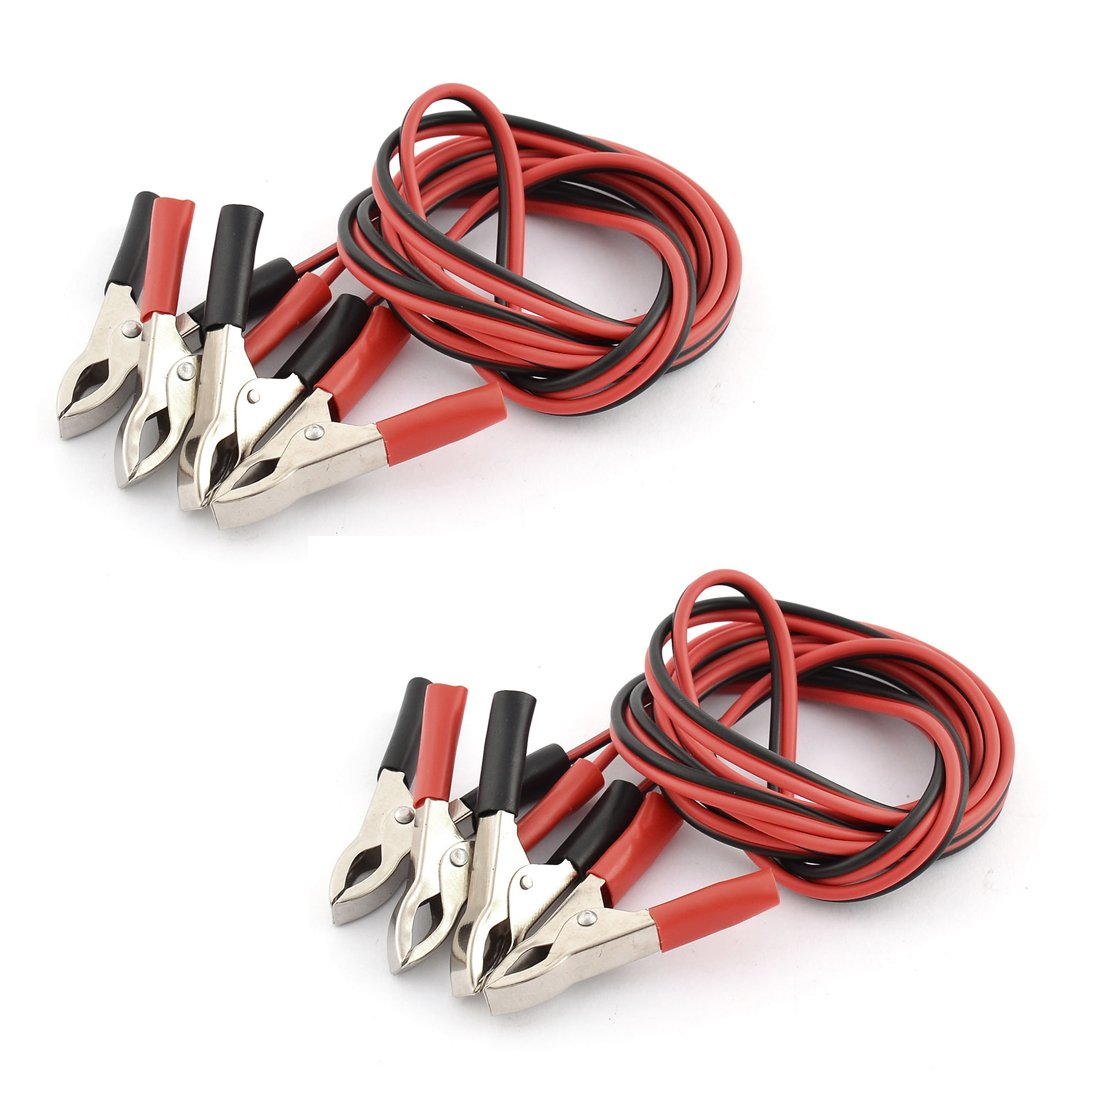 Uxcell a16032800ux0285 5A Alligator Clip Double Wire Battery Test Booster Jumper Cable 1.5M Long 2pcs (Pack of 2)